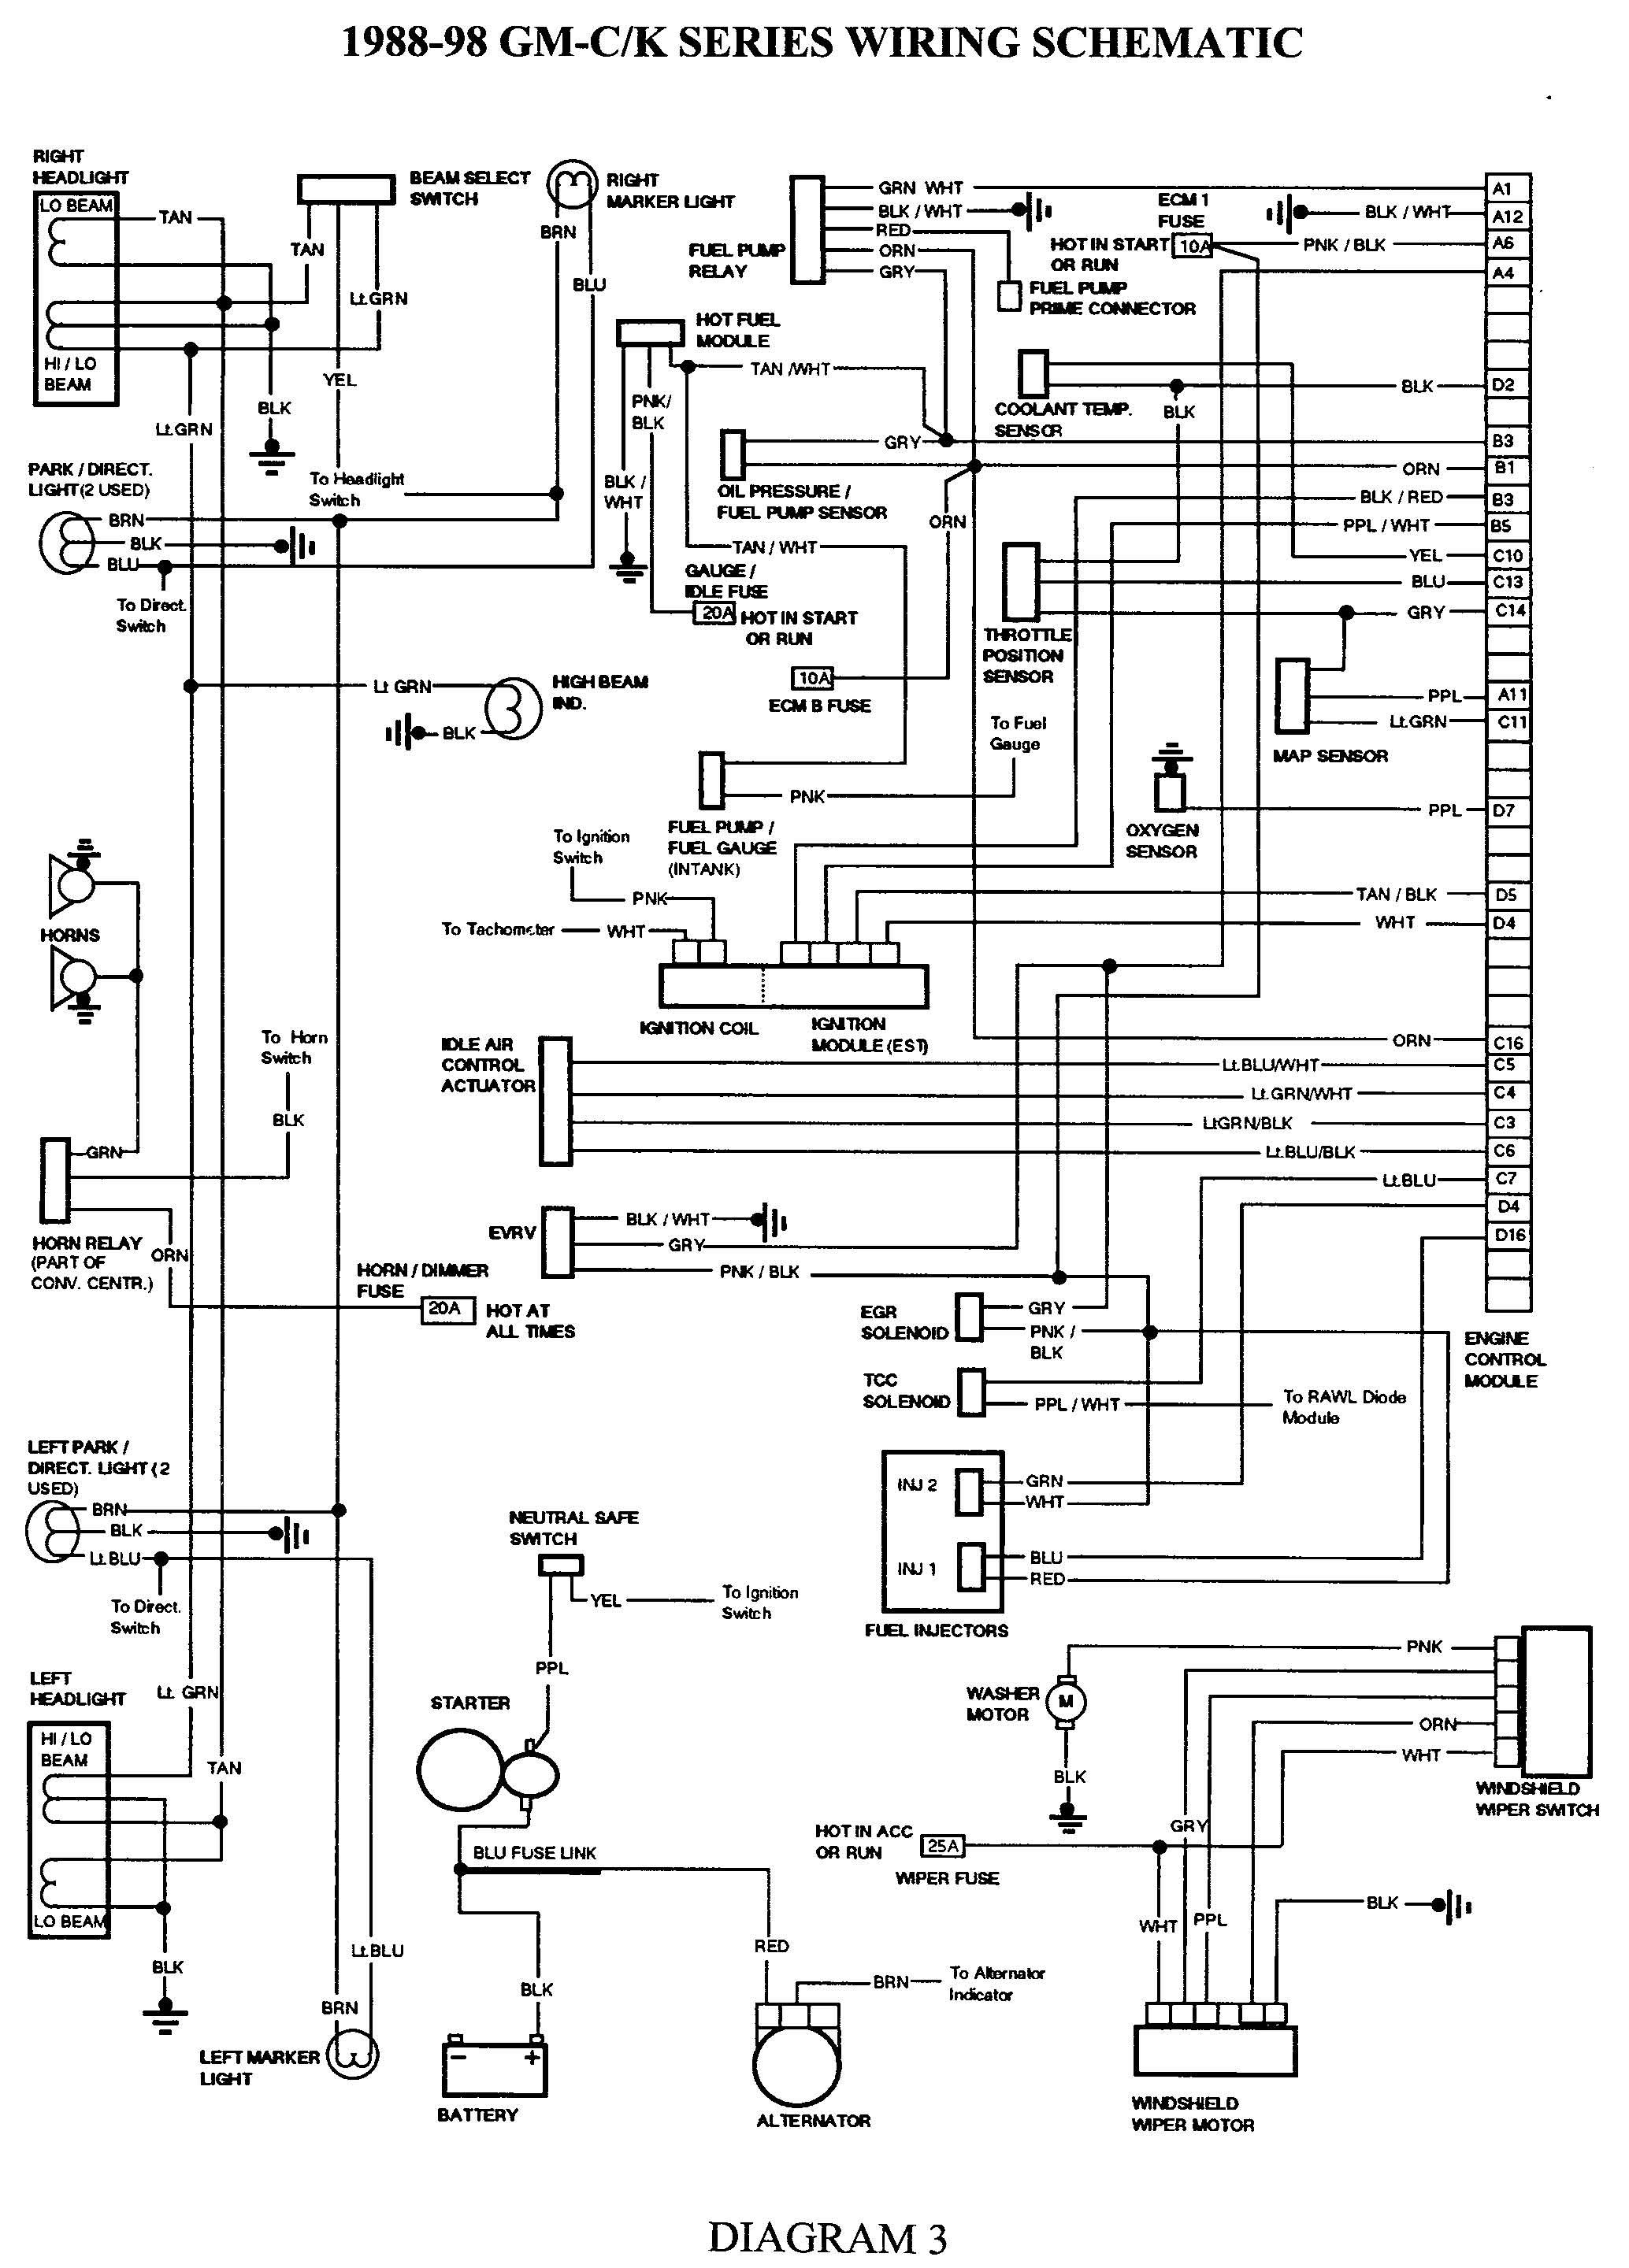 gmc truck wiring diagrams on gm wiring harness diagram 88 98 kc 1989 gmc wiring harness [ 2068 x 2880 Pixel ]